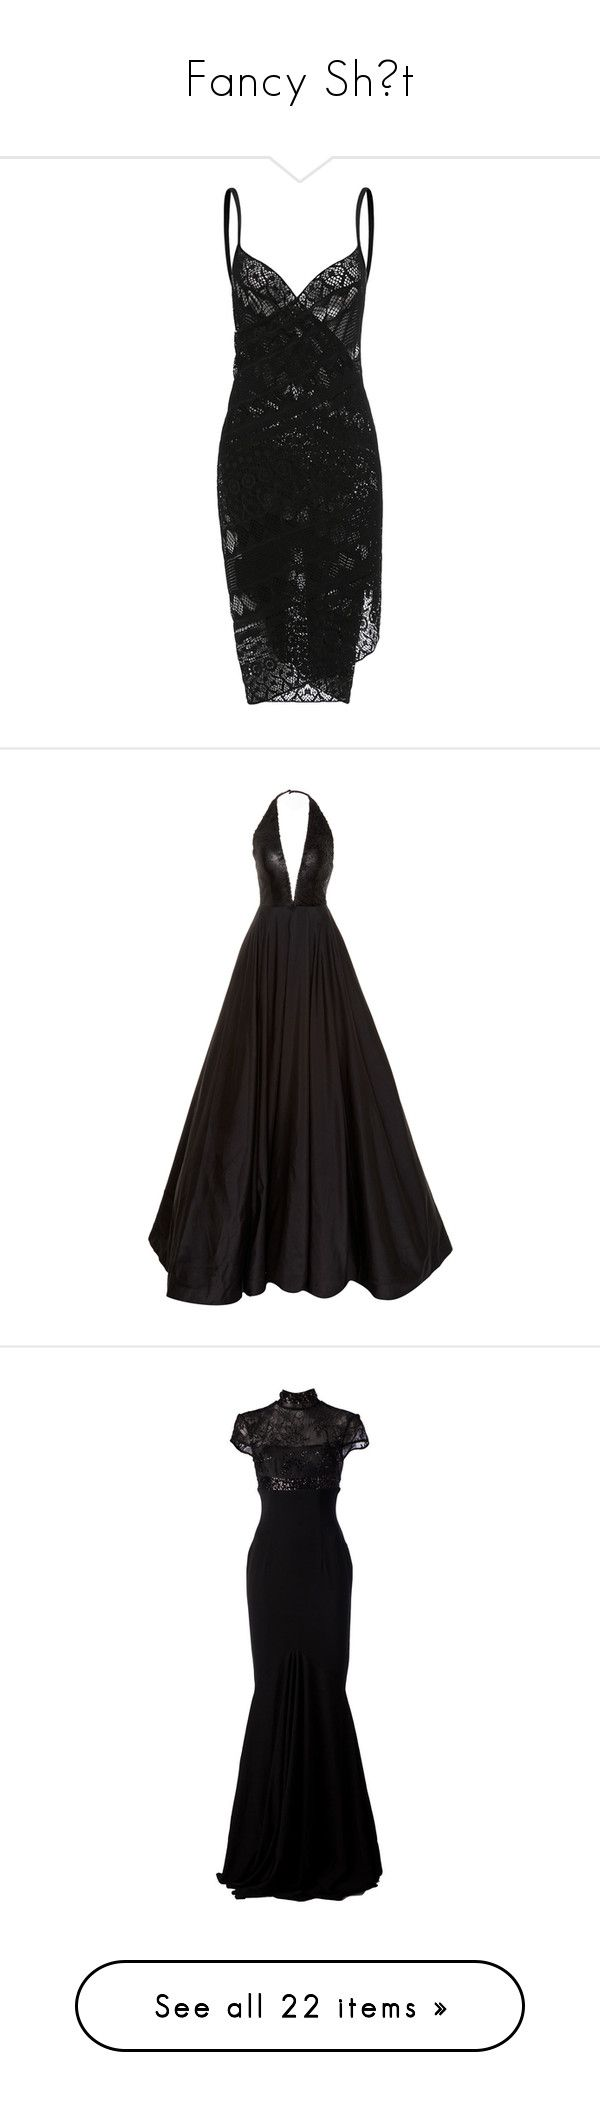 """Fancy Shıt"" by unholy-soul ❤ liked on Polyvore featuring dresses, black, gowns, long dresses, romona keveza, vestido, halter evening dress, halter-neck dresses, halter neckline dress and long halter dress"